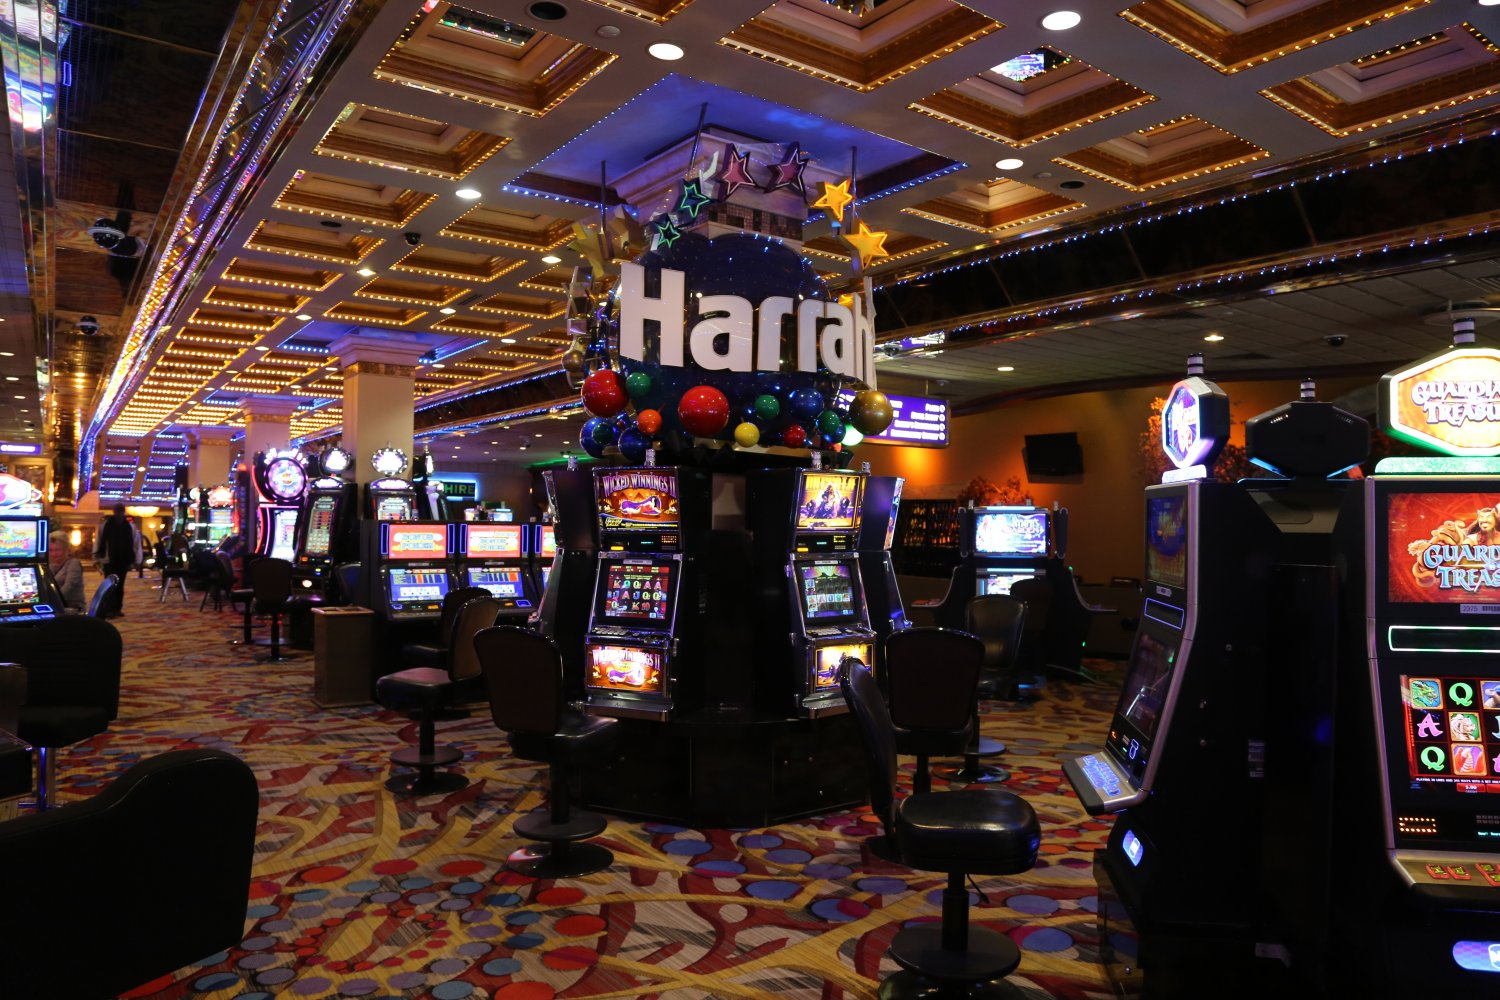 Address harrahs casino reno nevada slots casino